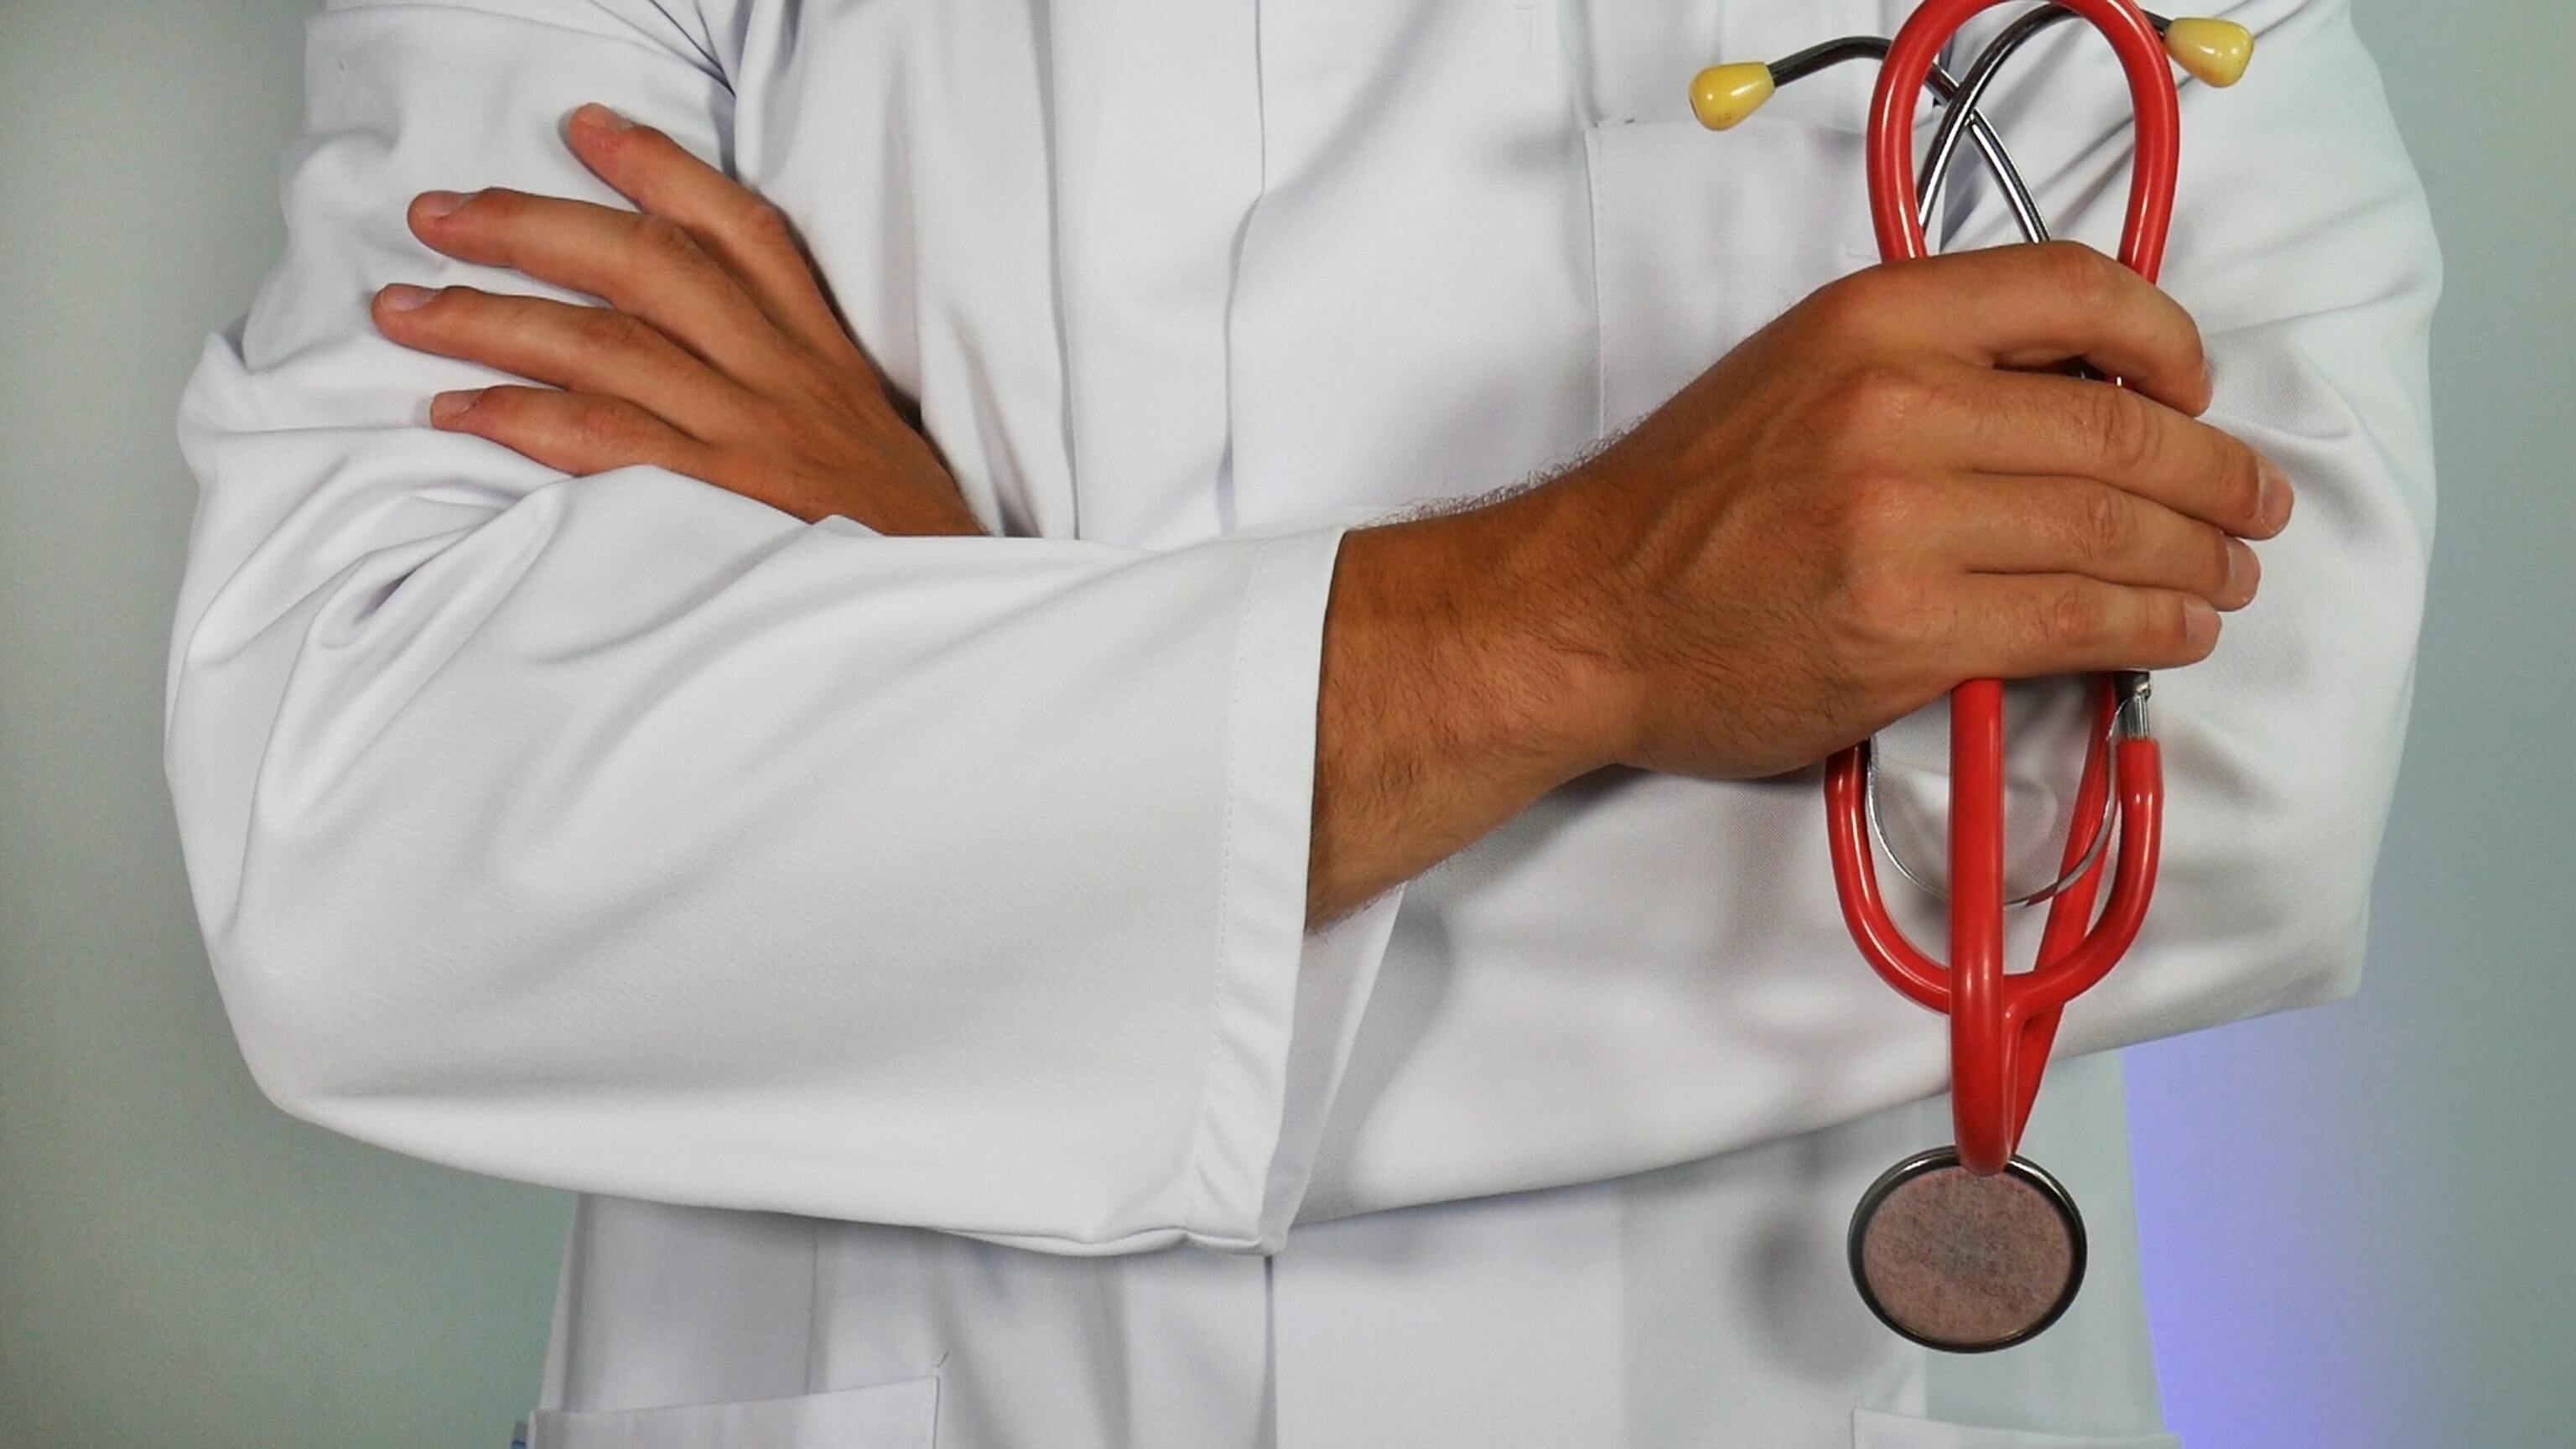 person in white doctors gown with stethoscope